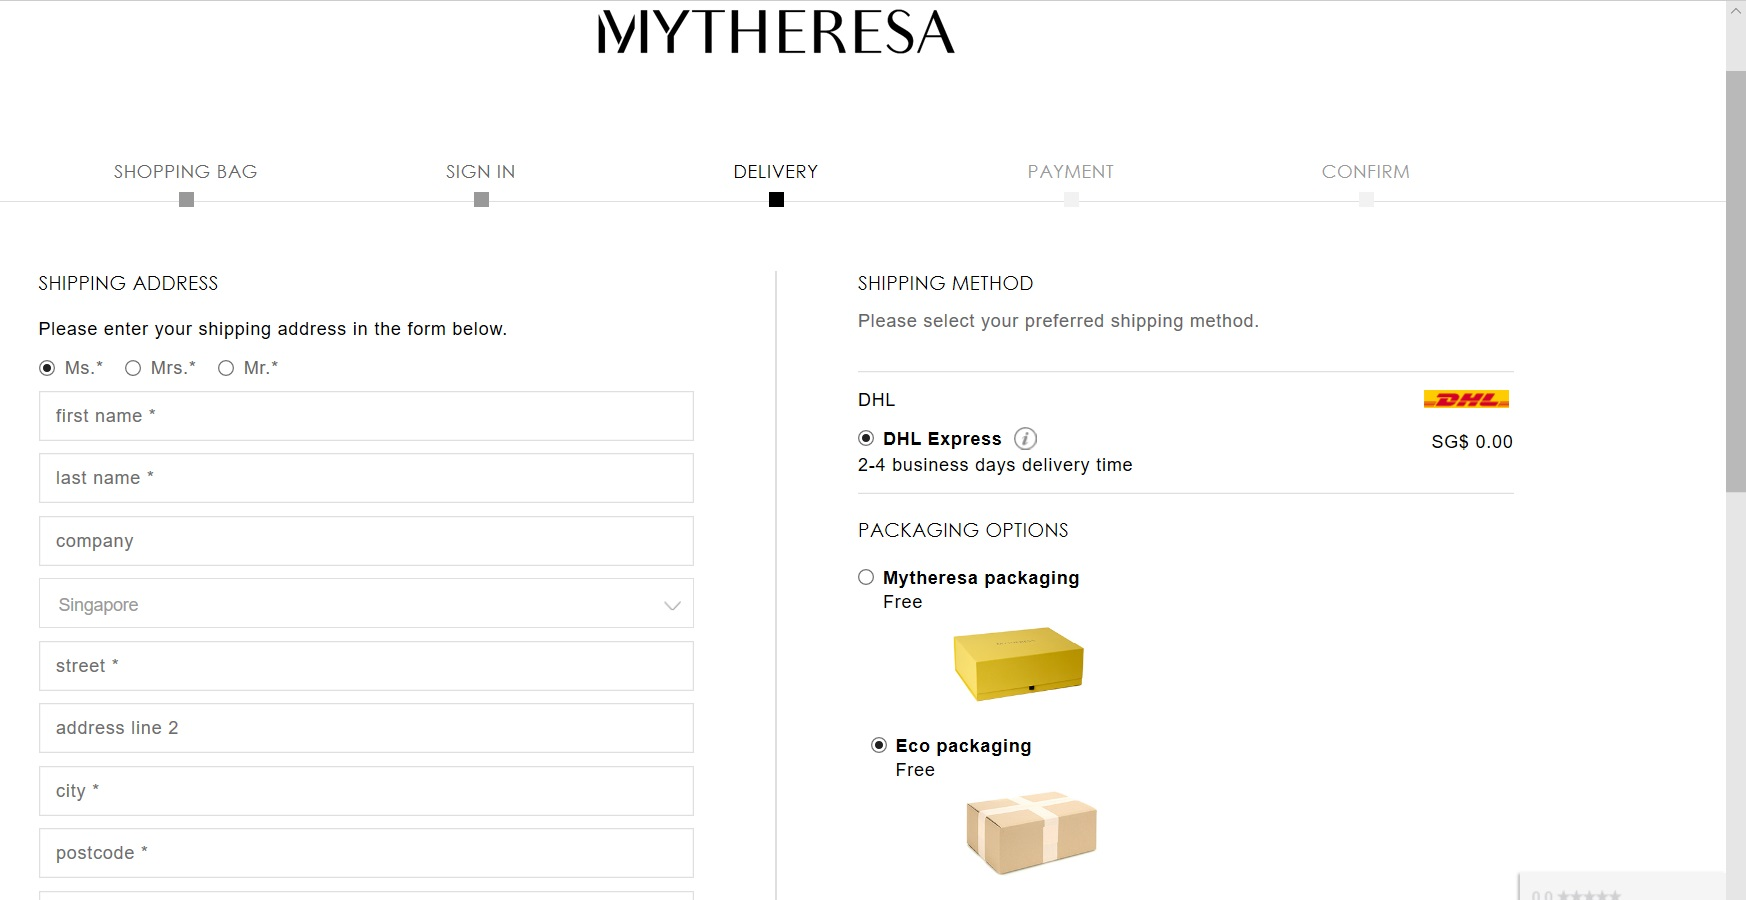 Form to specify shipping address and method.